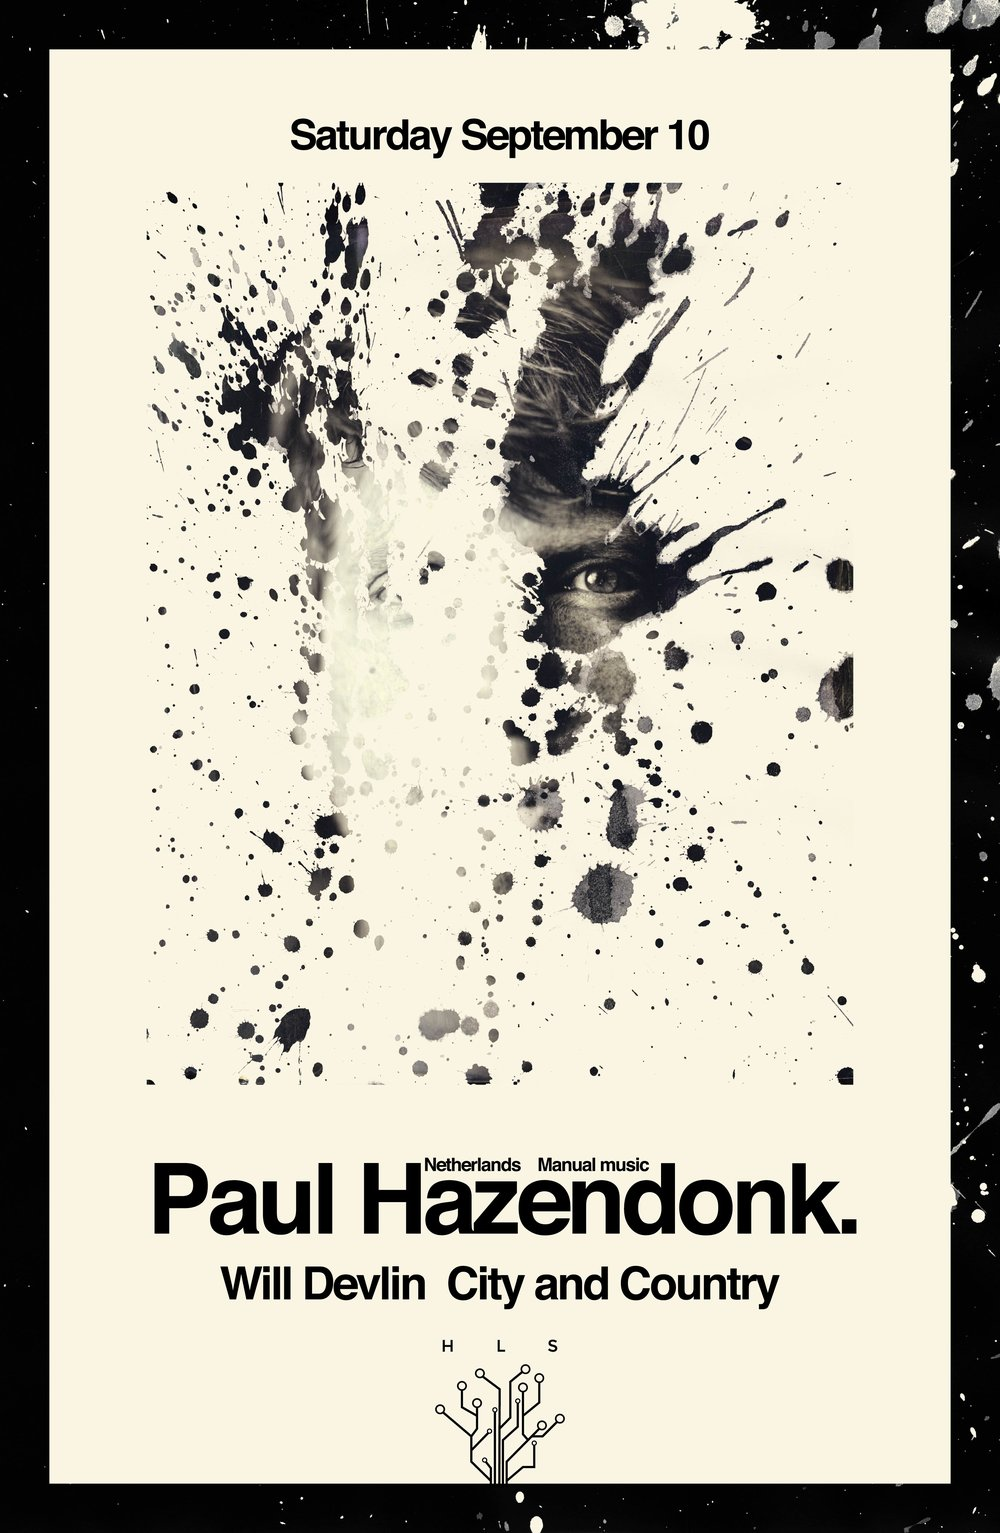 Paul-Hazendonk-Habitat-Living-sound.jpeg